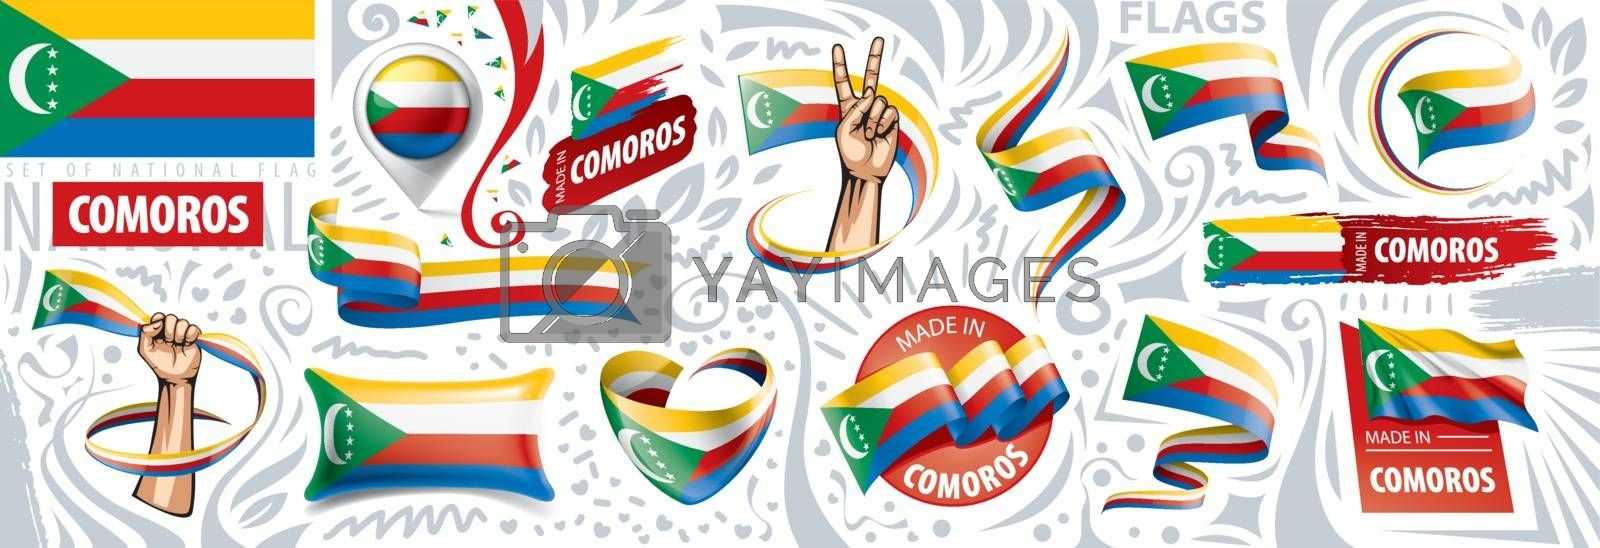 Vector set of the national flag of Comoros in various creative designs.